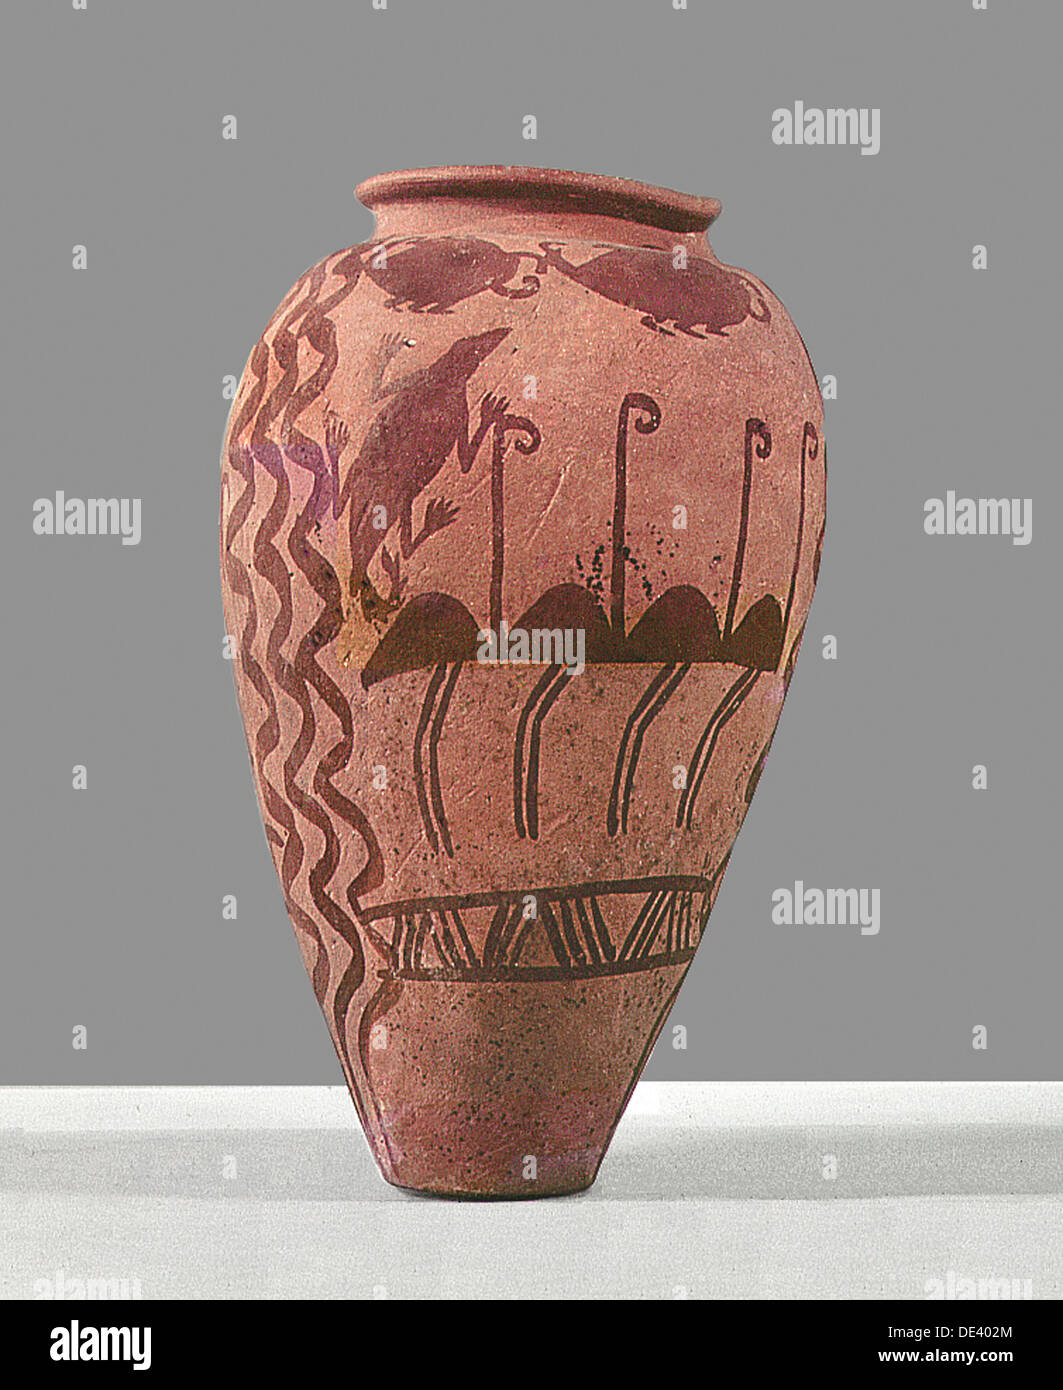 An urn decorated with a design of stylised ostriches. - Stock Image